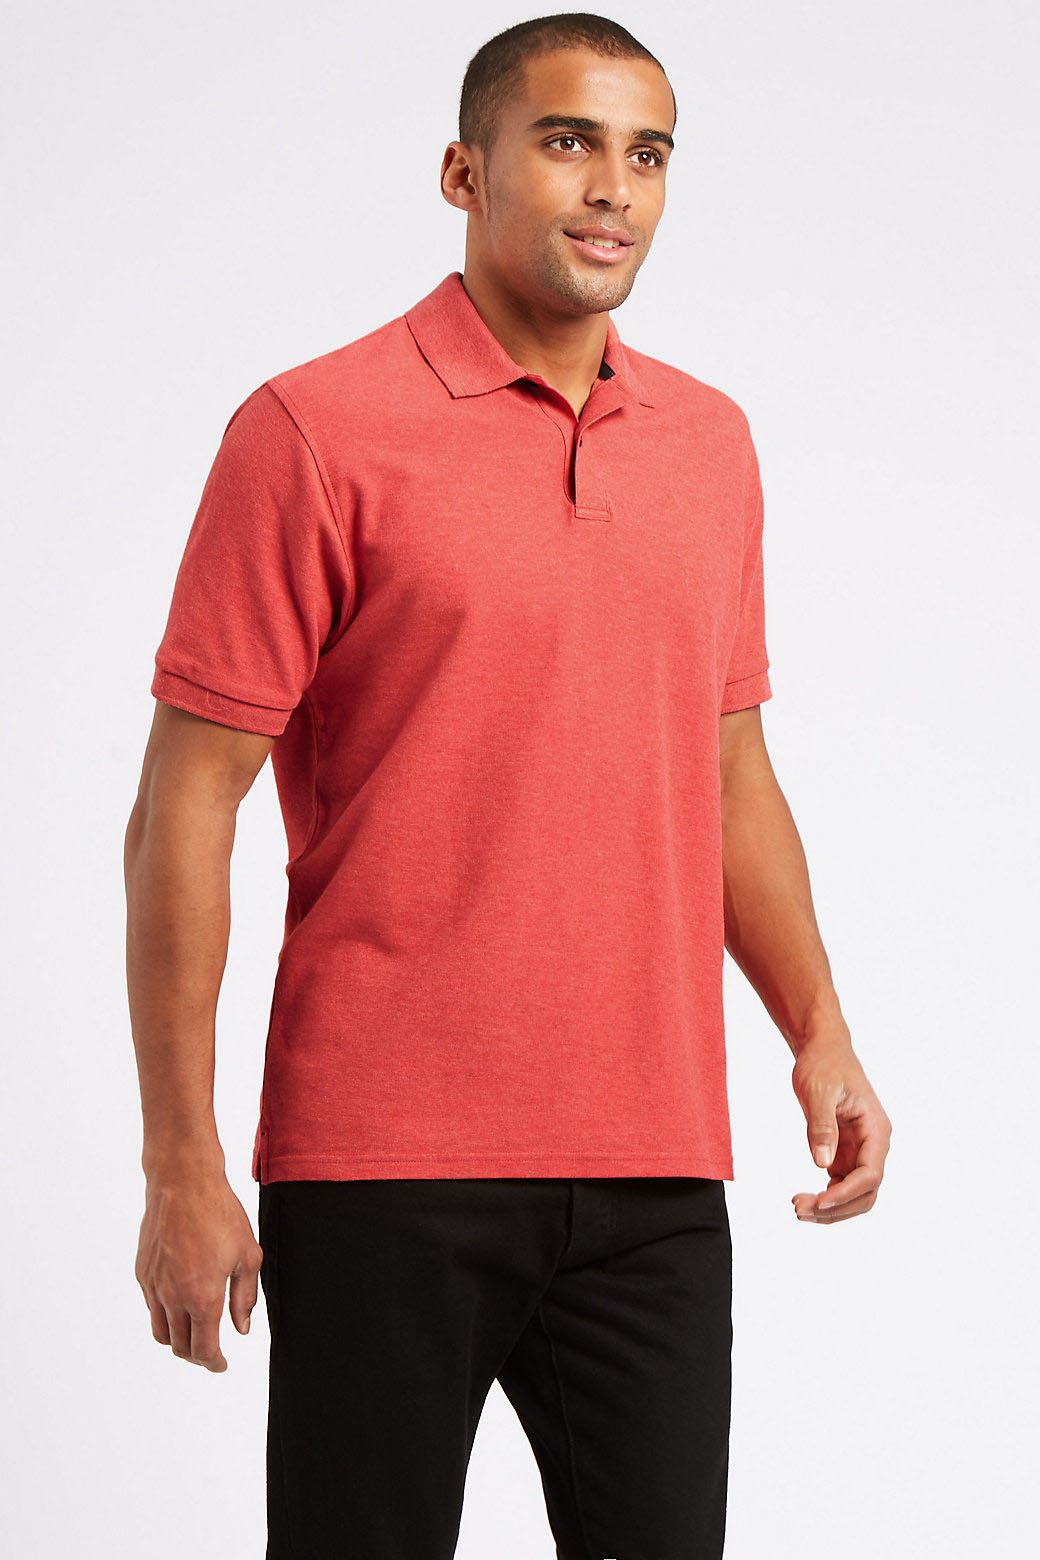 Ex-Marks-and-Spencer-Mens-Cotton-Pique-Polo-Shirt-NEW-Sizes-S-3XL thumbnail 18